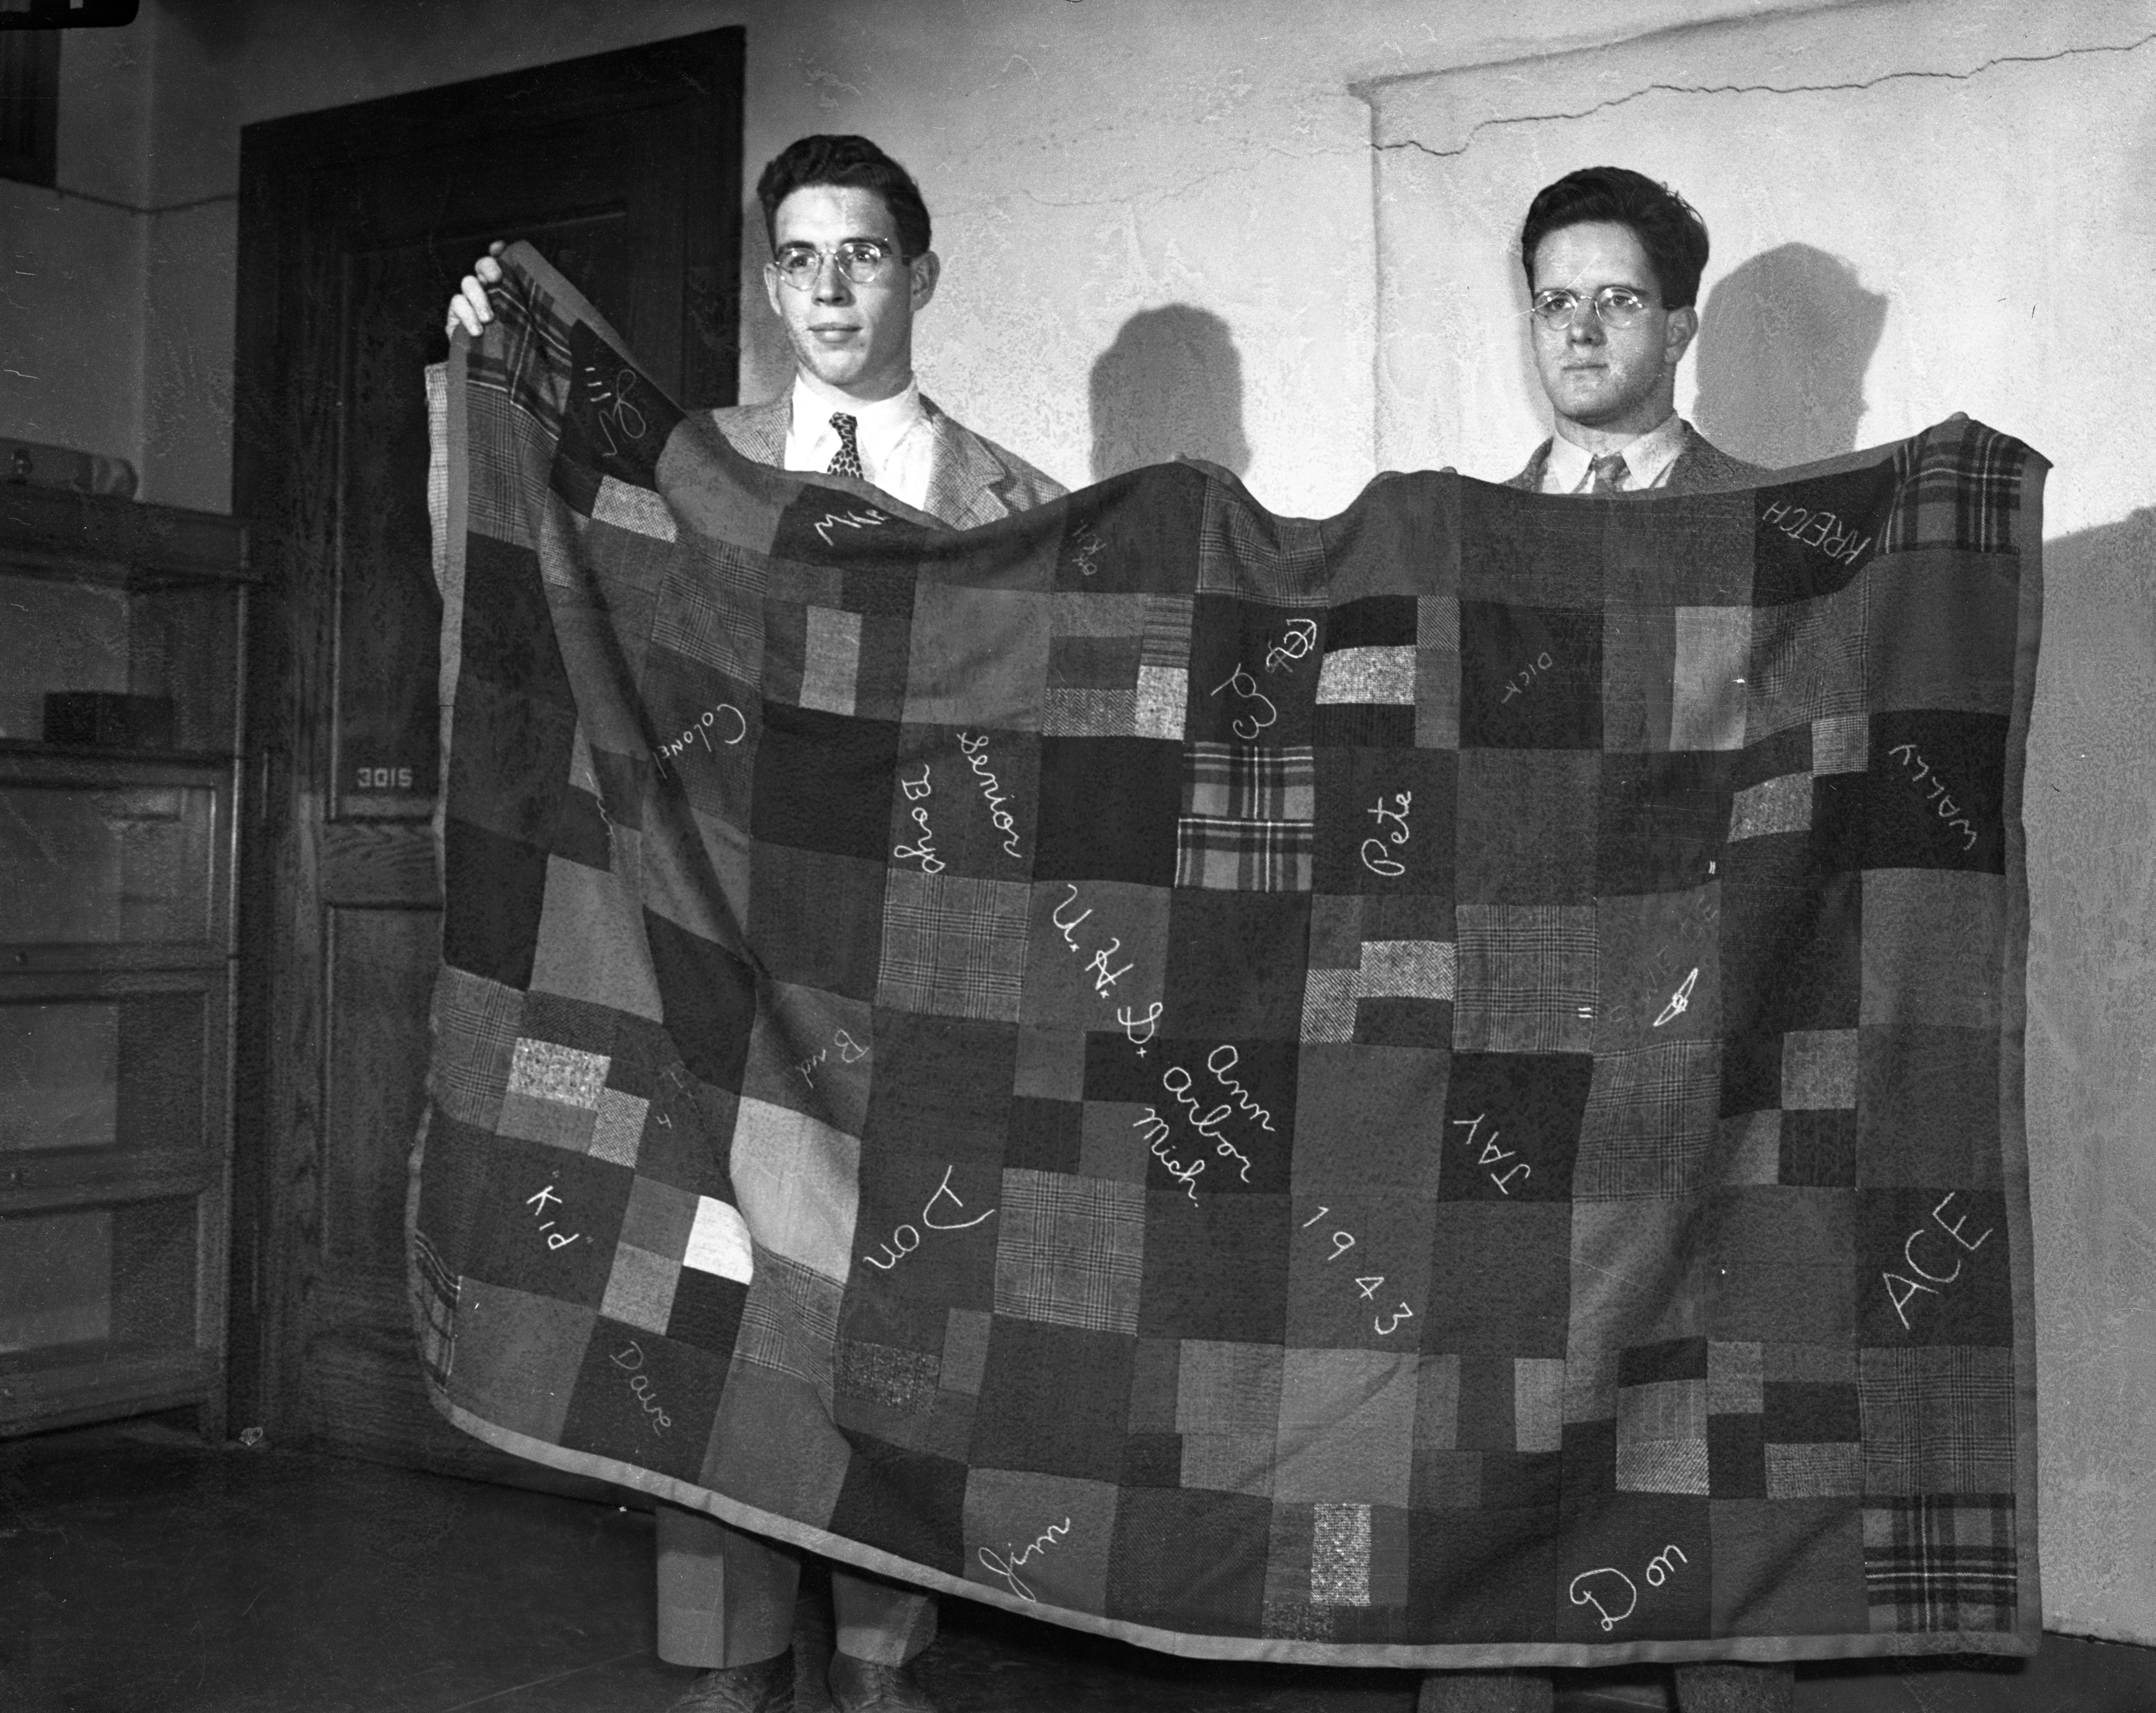 University High School students William Kretzschmar and George Kennard hold a quilt made by 19 UHS boys for the Red Cross, April 1943 image